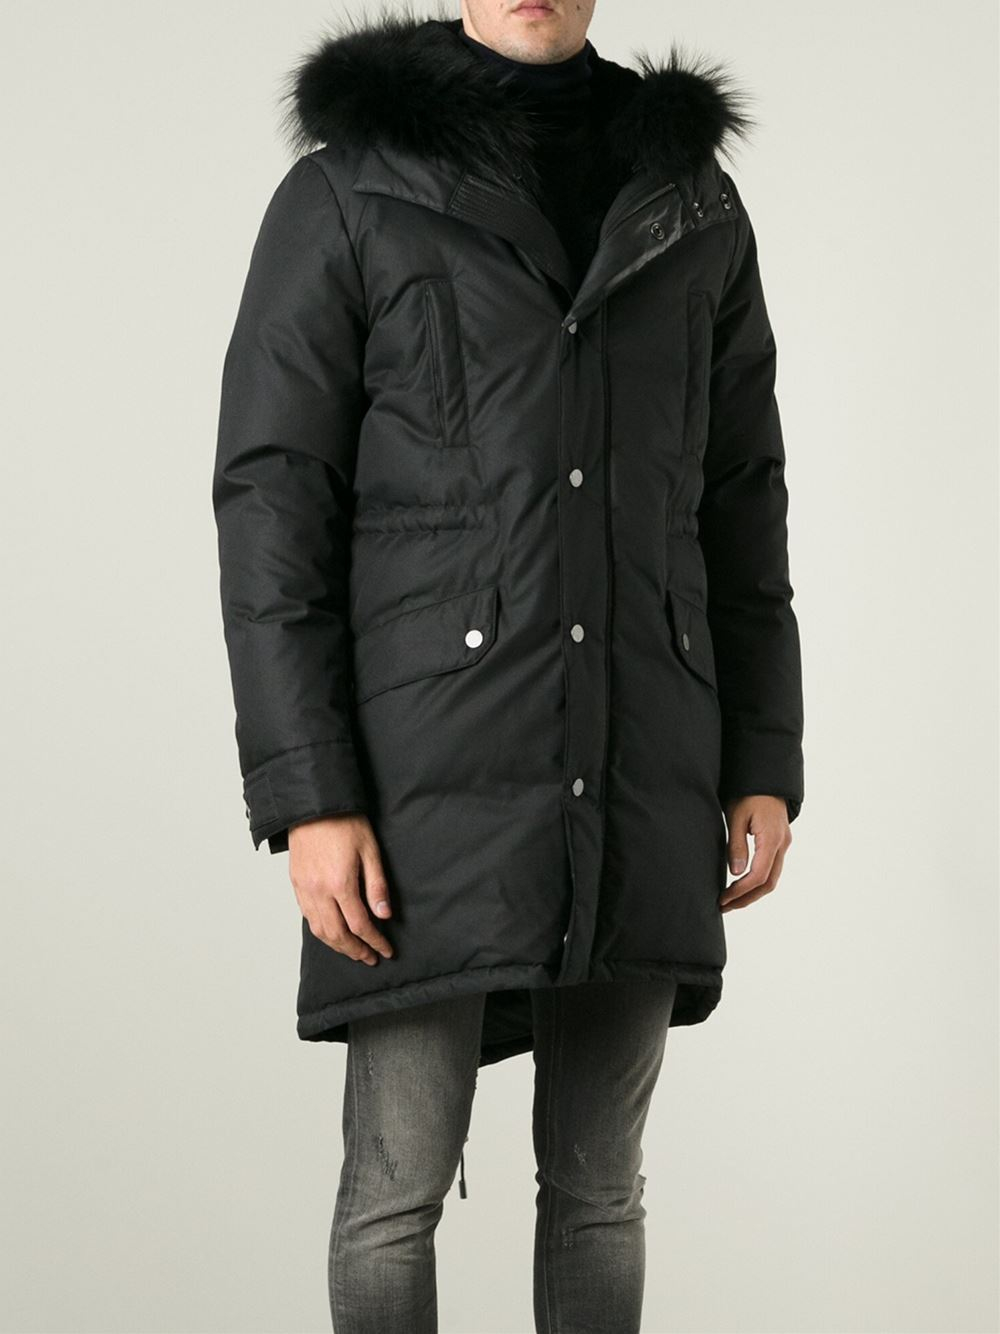 Free shipping and returns on Men's Hooded Coats & Jackets at mundo-halflife.tk